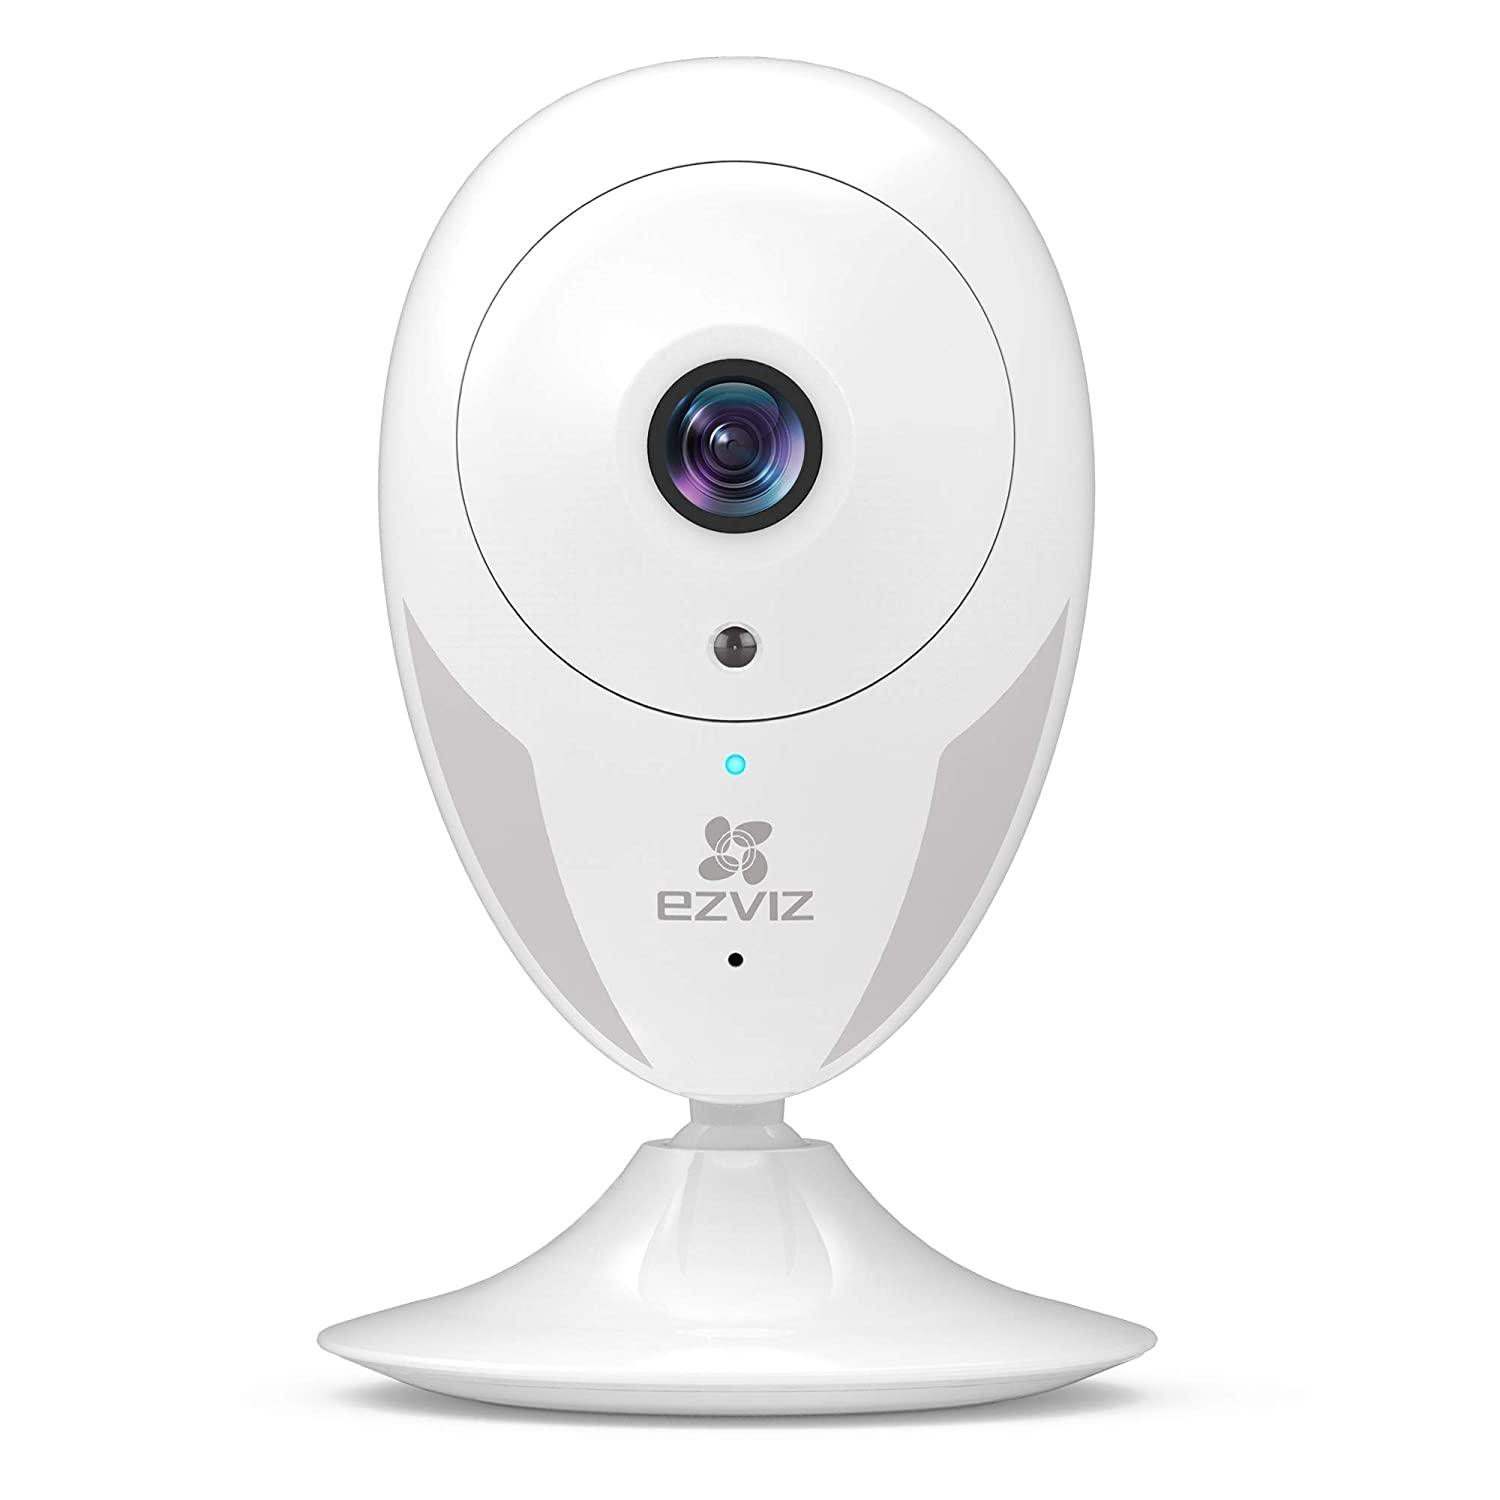 EZVIZ ip camera WiFi 2.4 Ghz